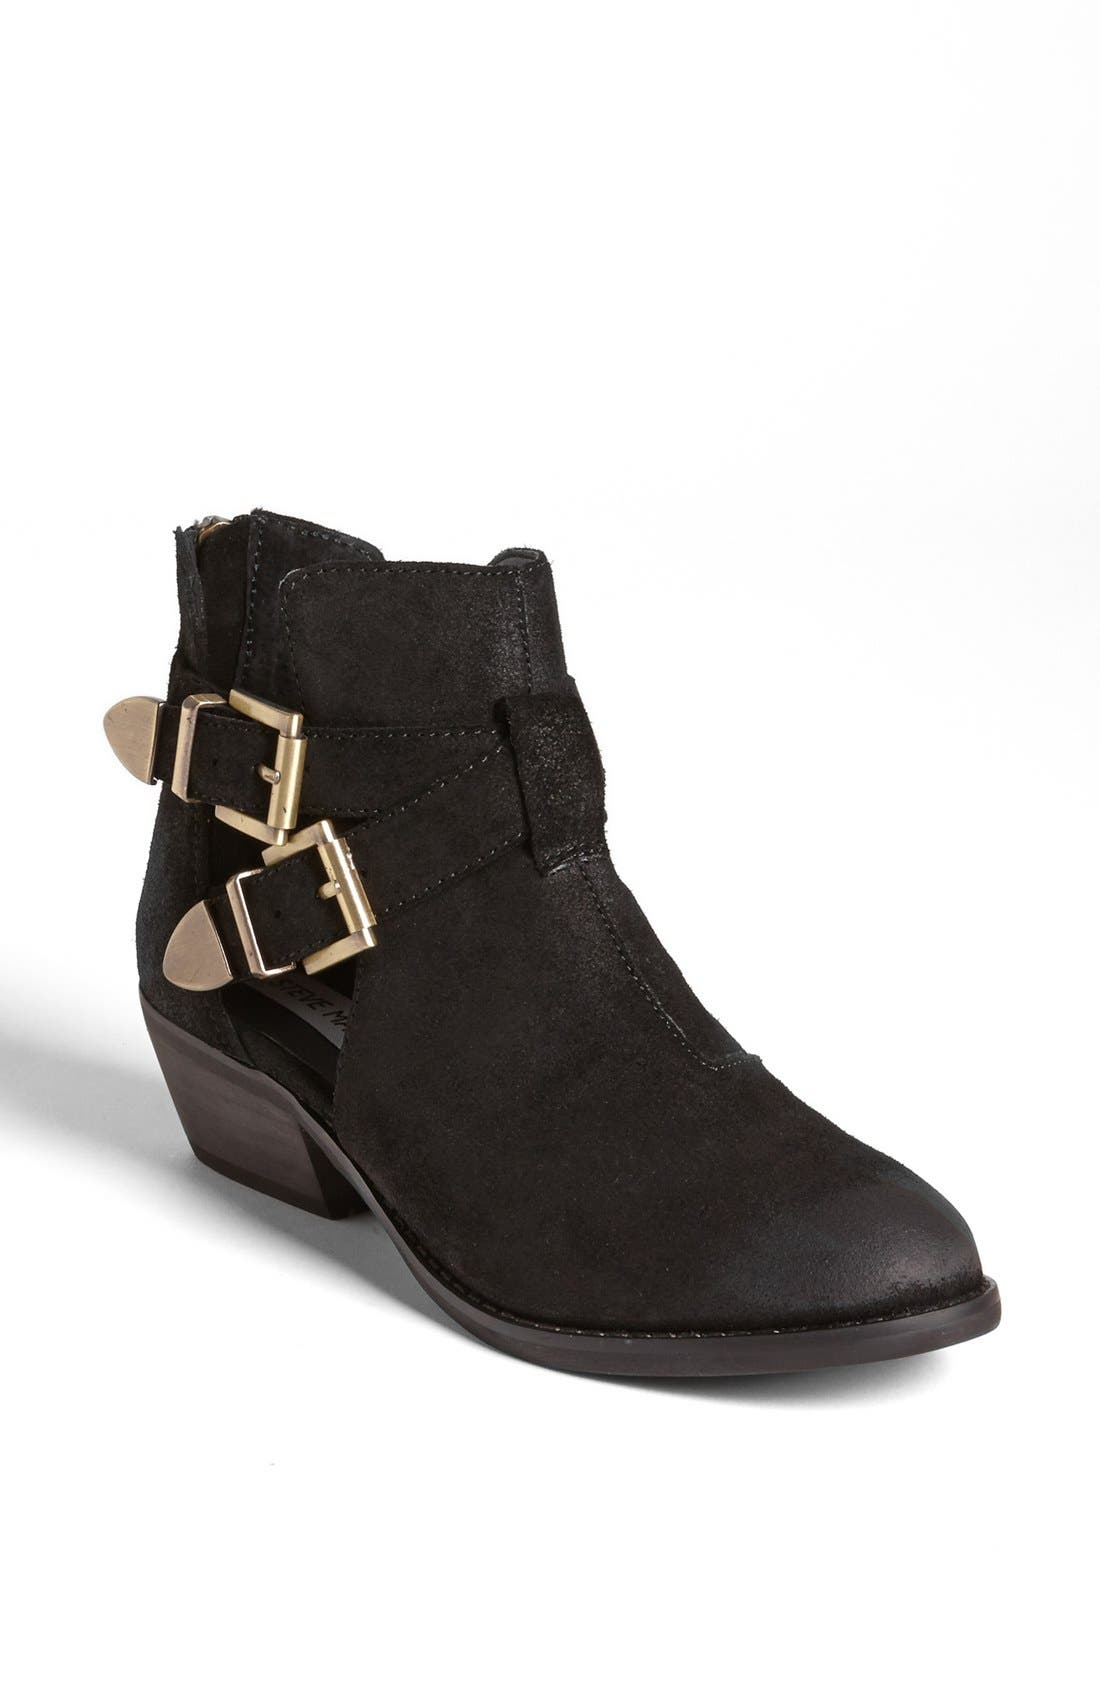 STEVE MADDEN 'Cinch' Bootie, Main, color, 006